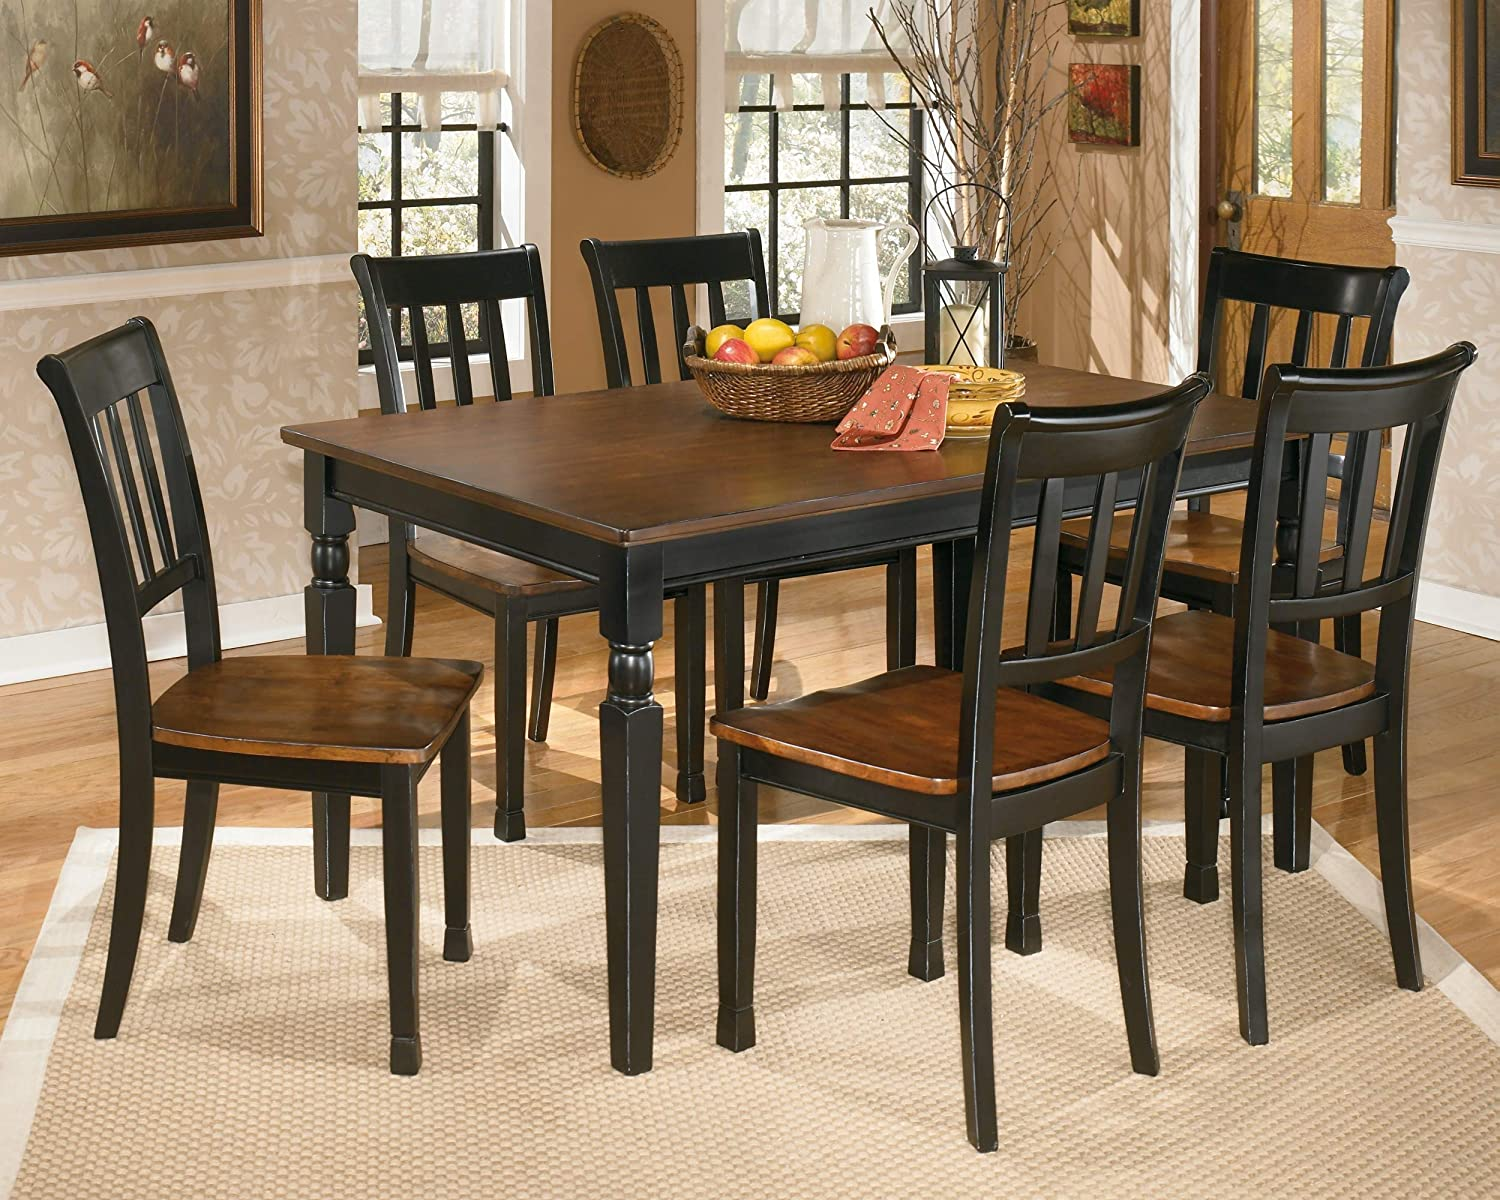 Pack of 4 Signature Design by Ashley Owingsville Dining Room Side Chair Set .Black;Brown